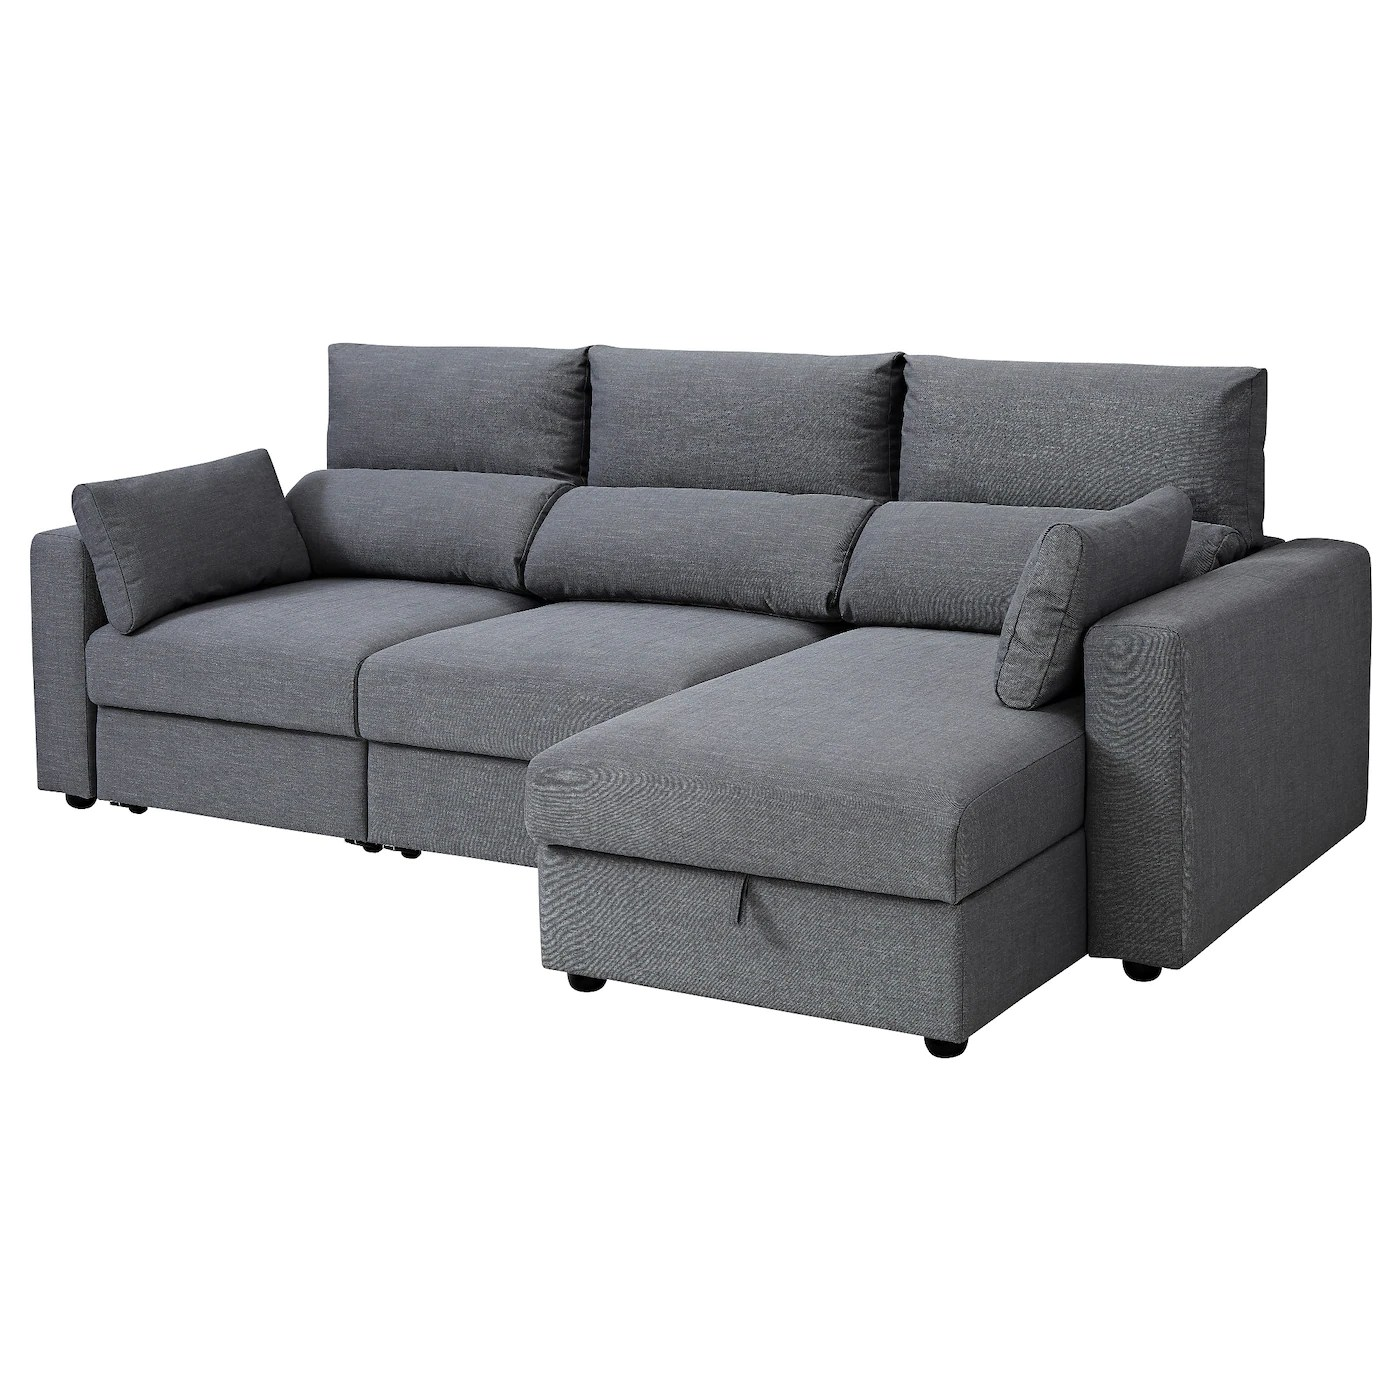 Ikea Online Bettsofa Eskilstuna 3 Seat Sofa With Chaise Longue Nordvalla Dark Grey